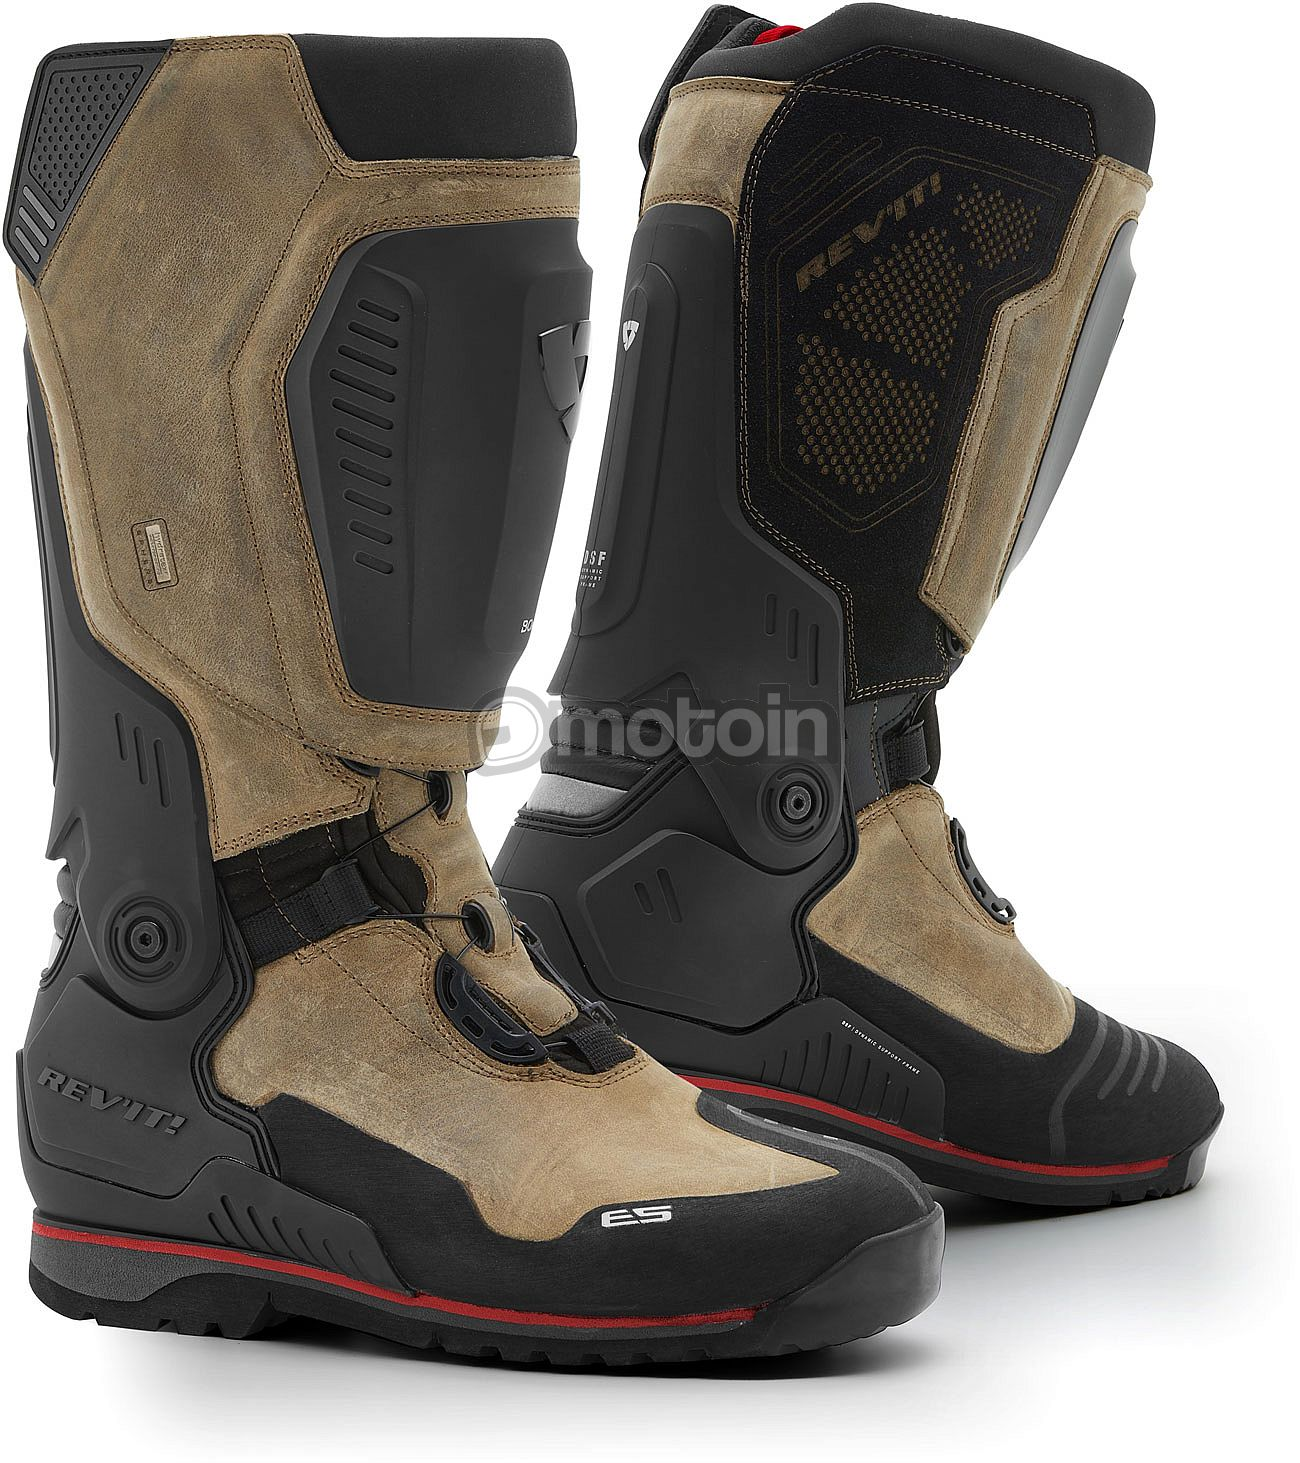 Outdry Outdry ExpeditionStiefel ExpeditionStiefel Outdry ExpeditionStiefel Revit Revit Outdry ExpeditionStiefel Revit Revit 8nwkPX0NO